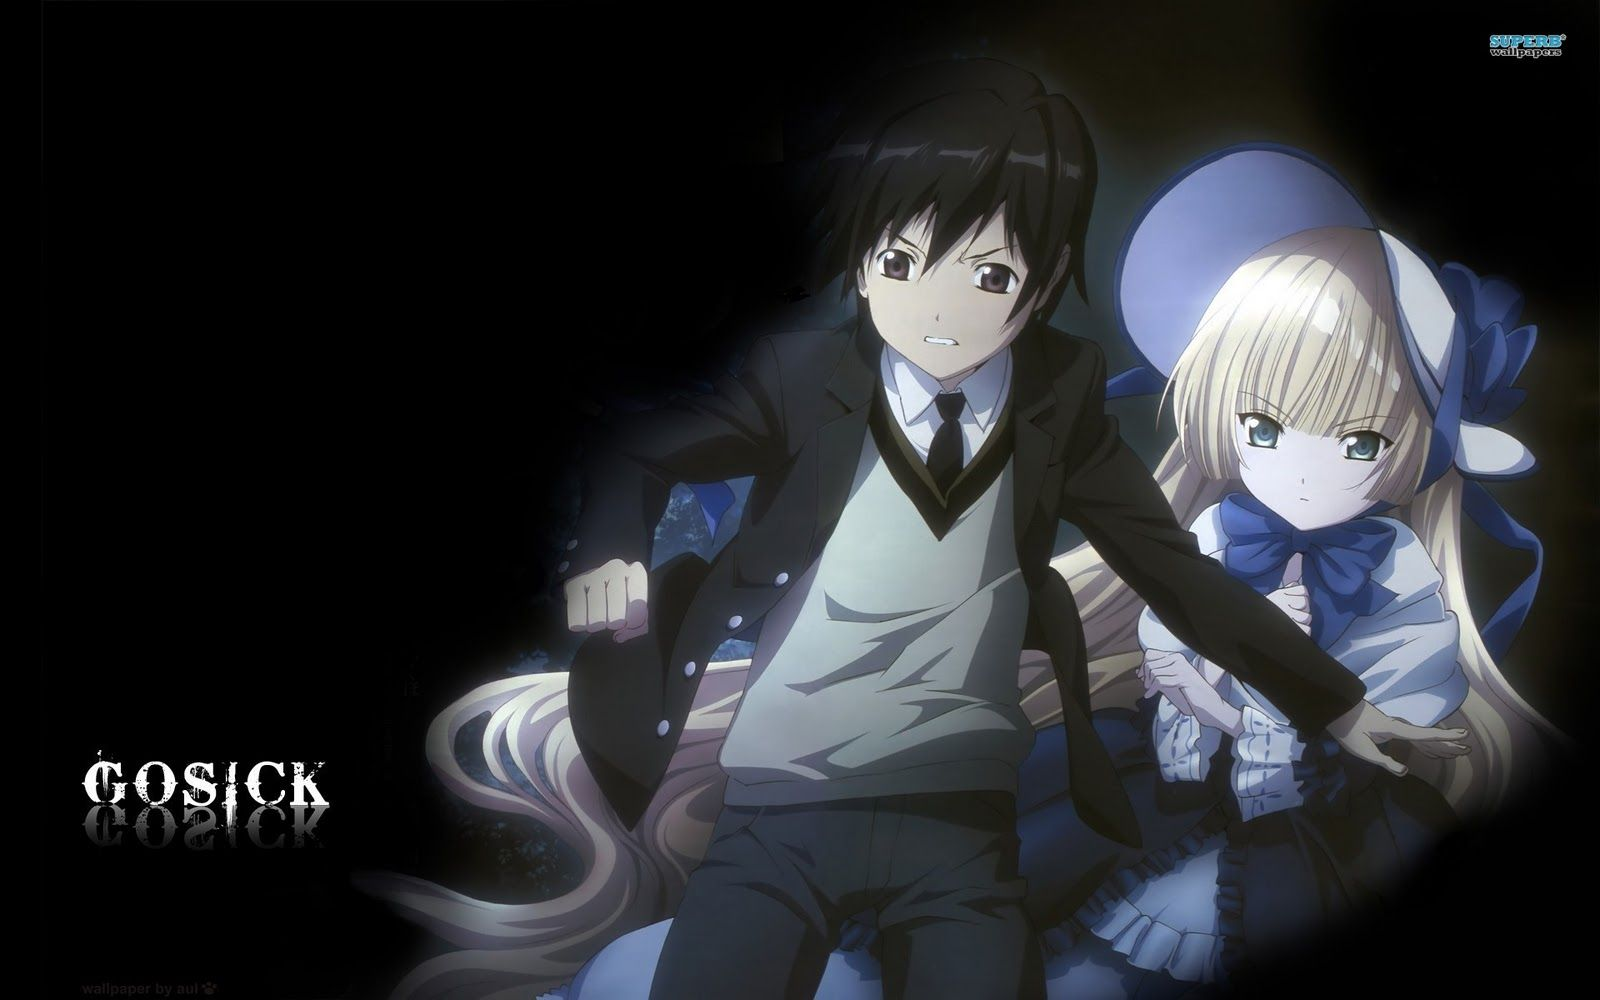 GOSICK CASE IV ( A BLUE ROSE ) (With images) Anime